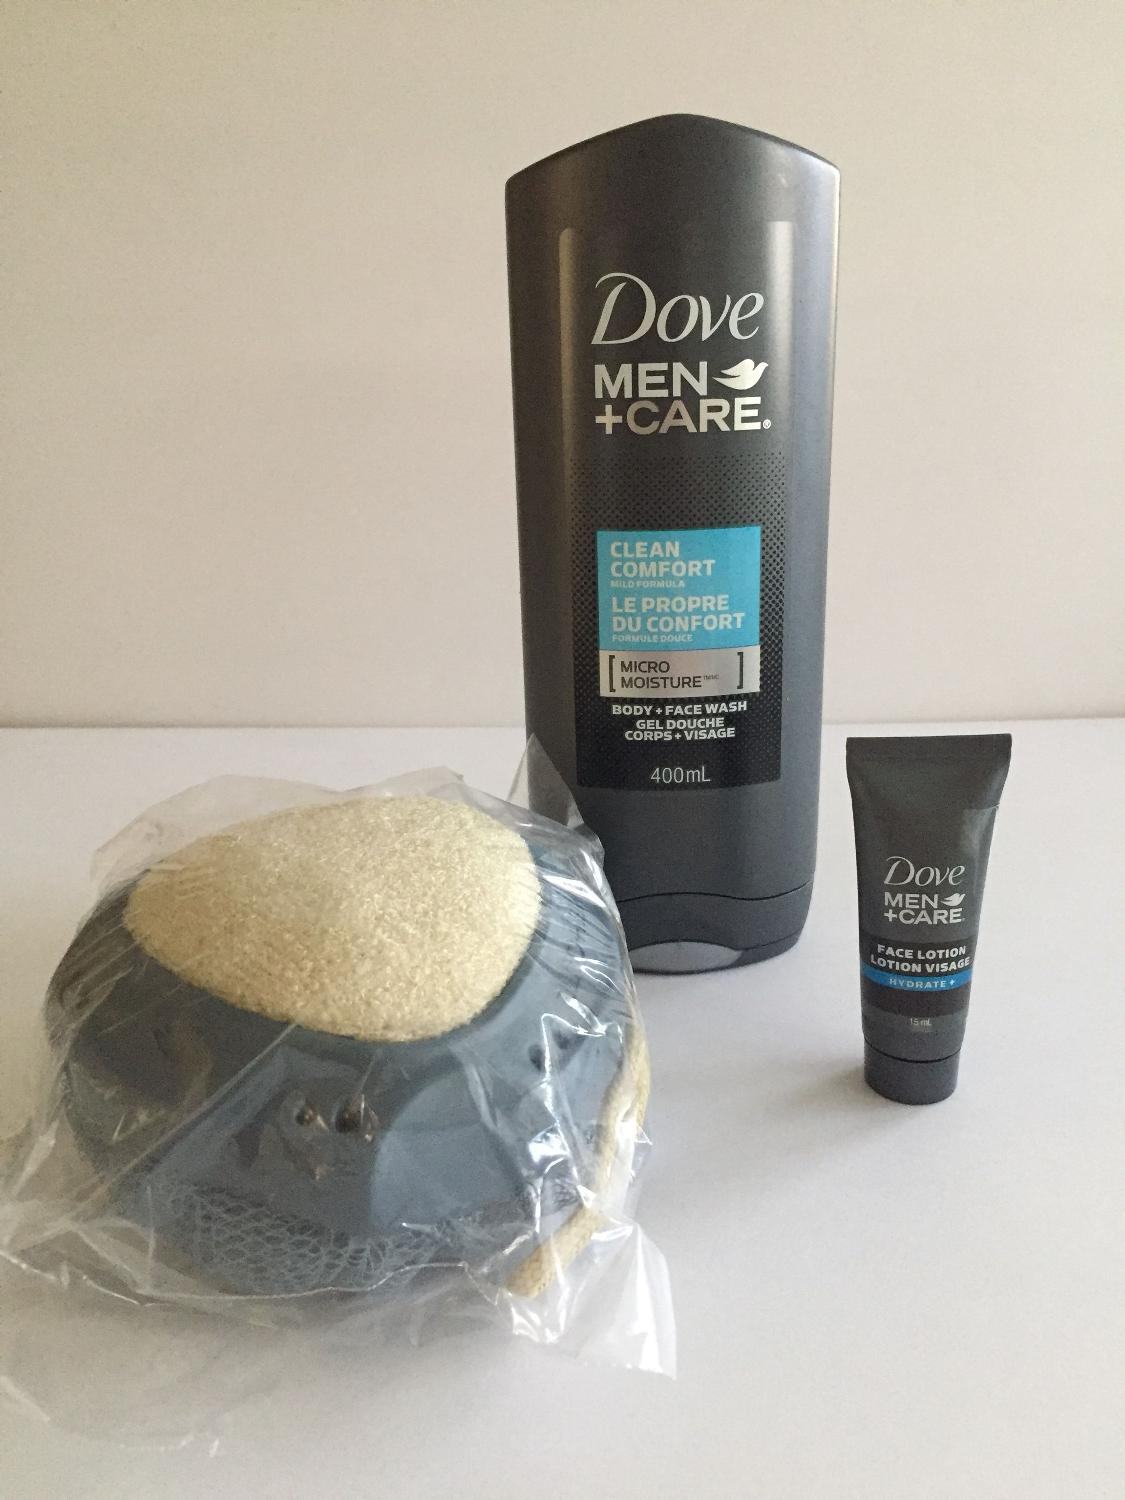 Find More Dove Men Care Clean Comfort Body Face Wash For Sale At Up To 90 Off